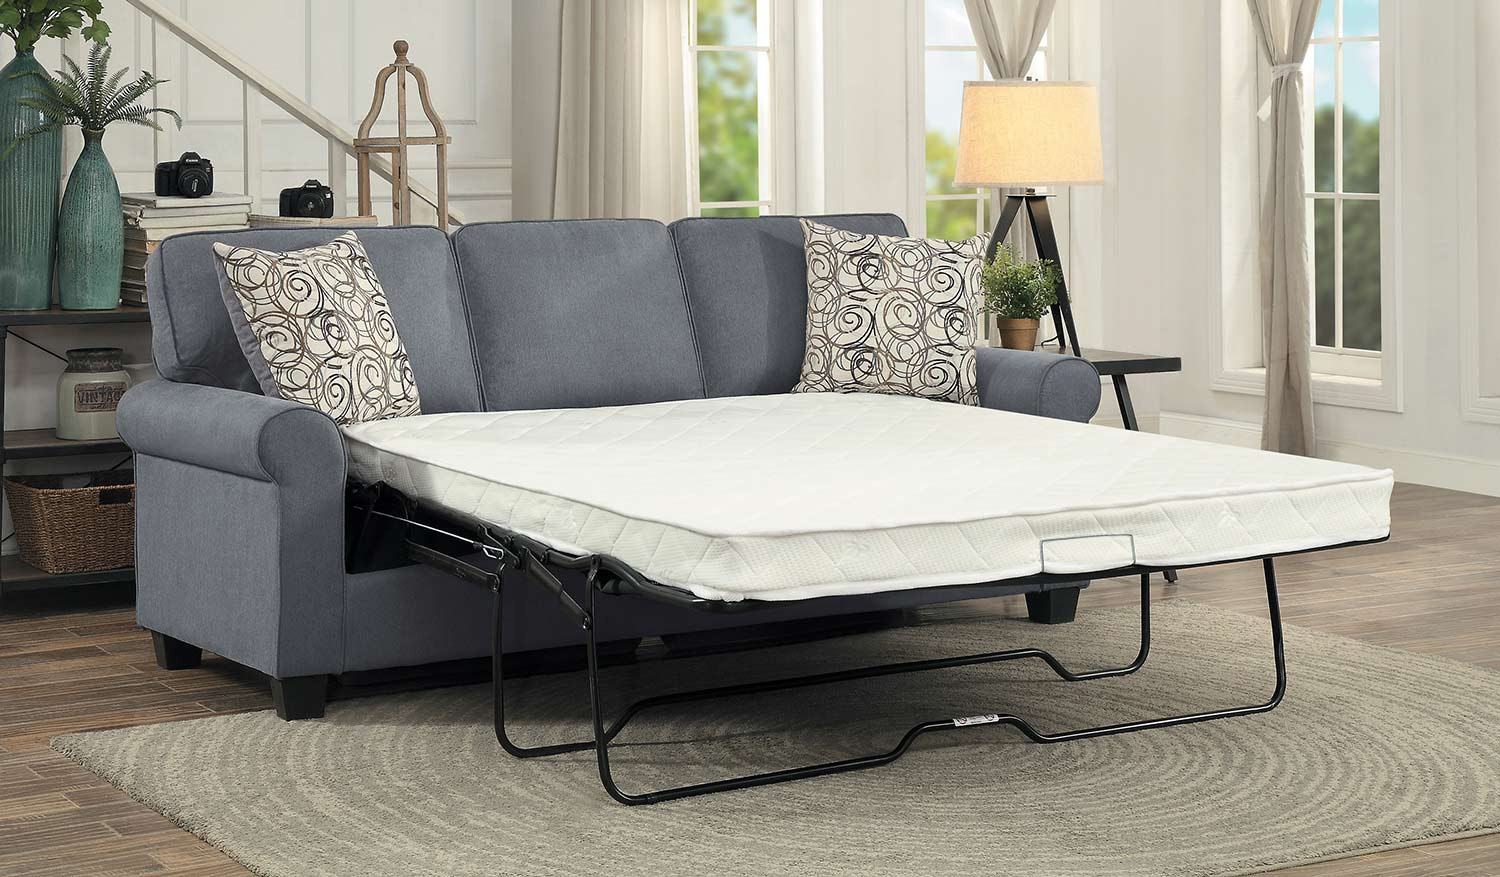 Homelegance Selkirk Sleeper Sofa With Sleeper Mattress - Gray